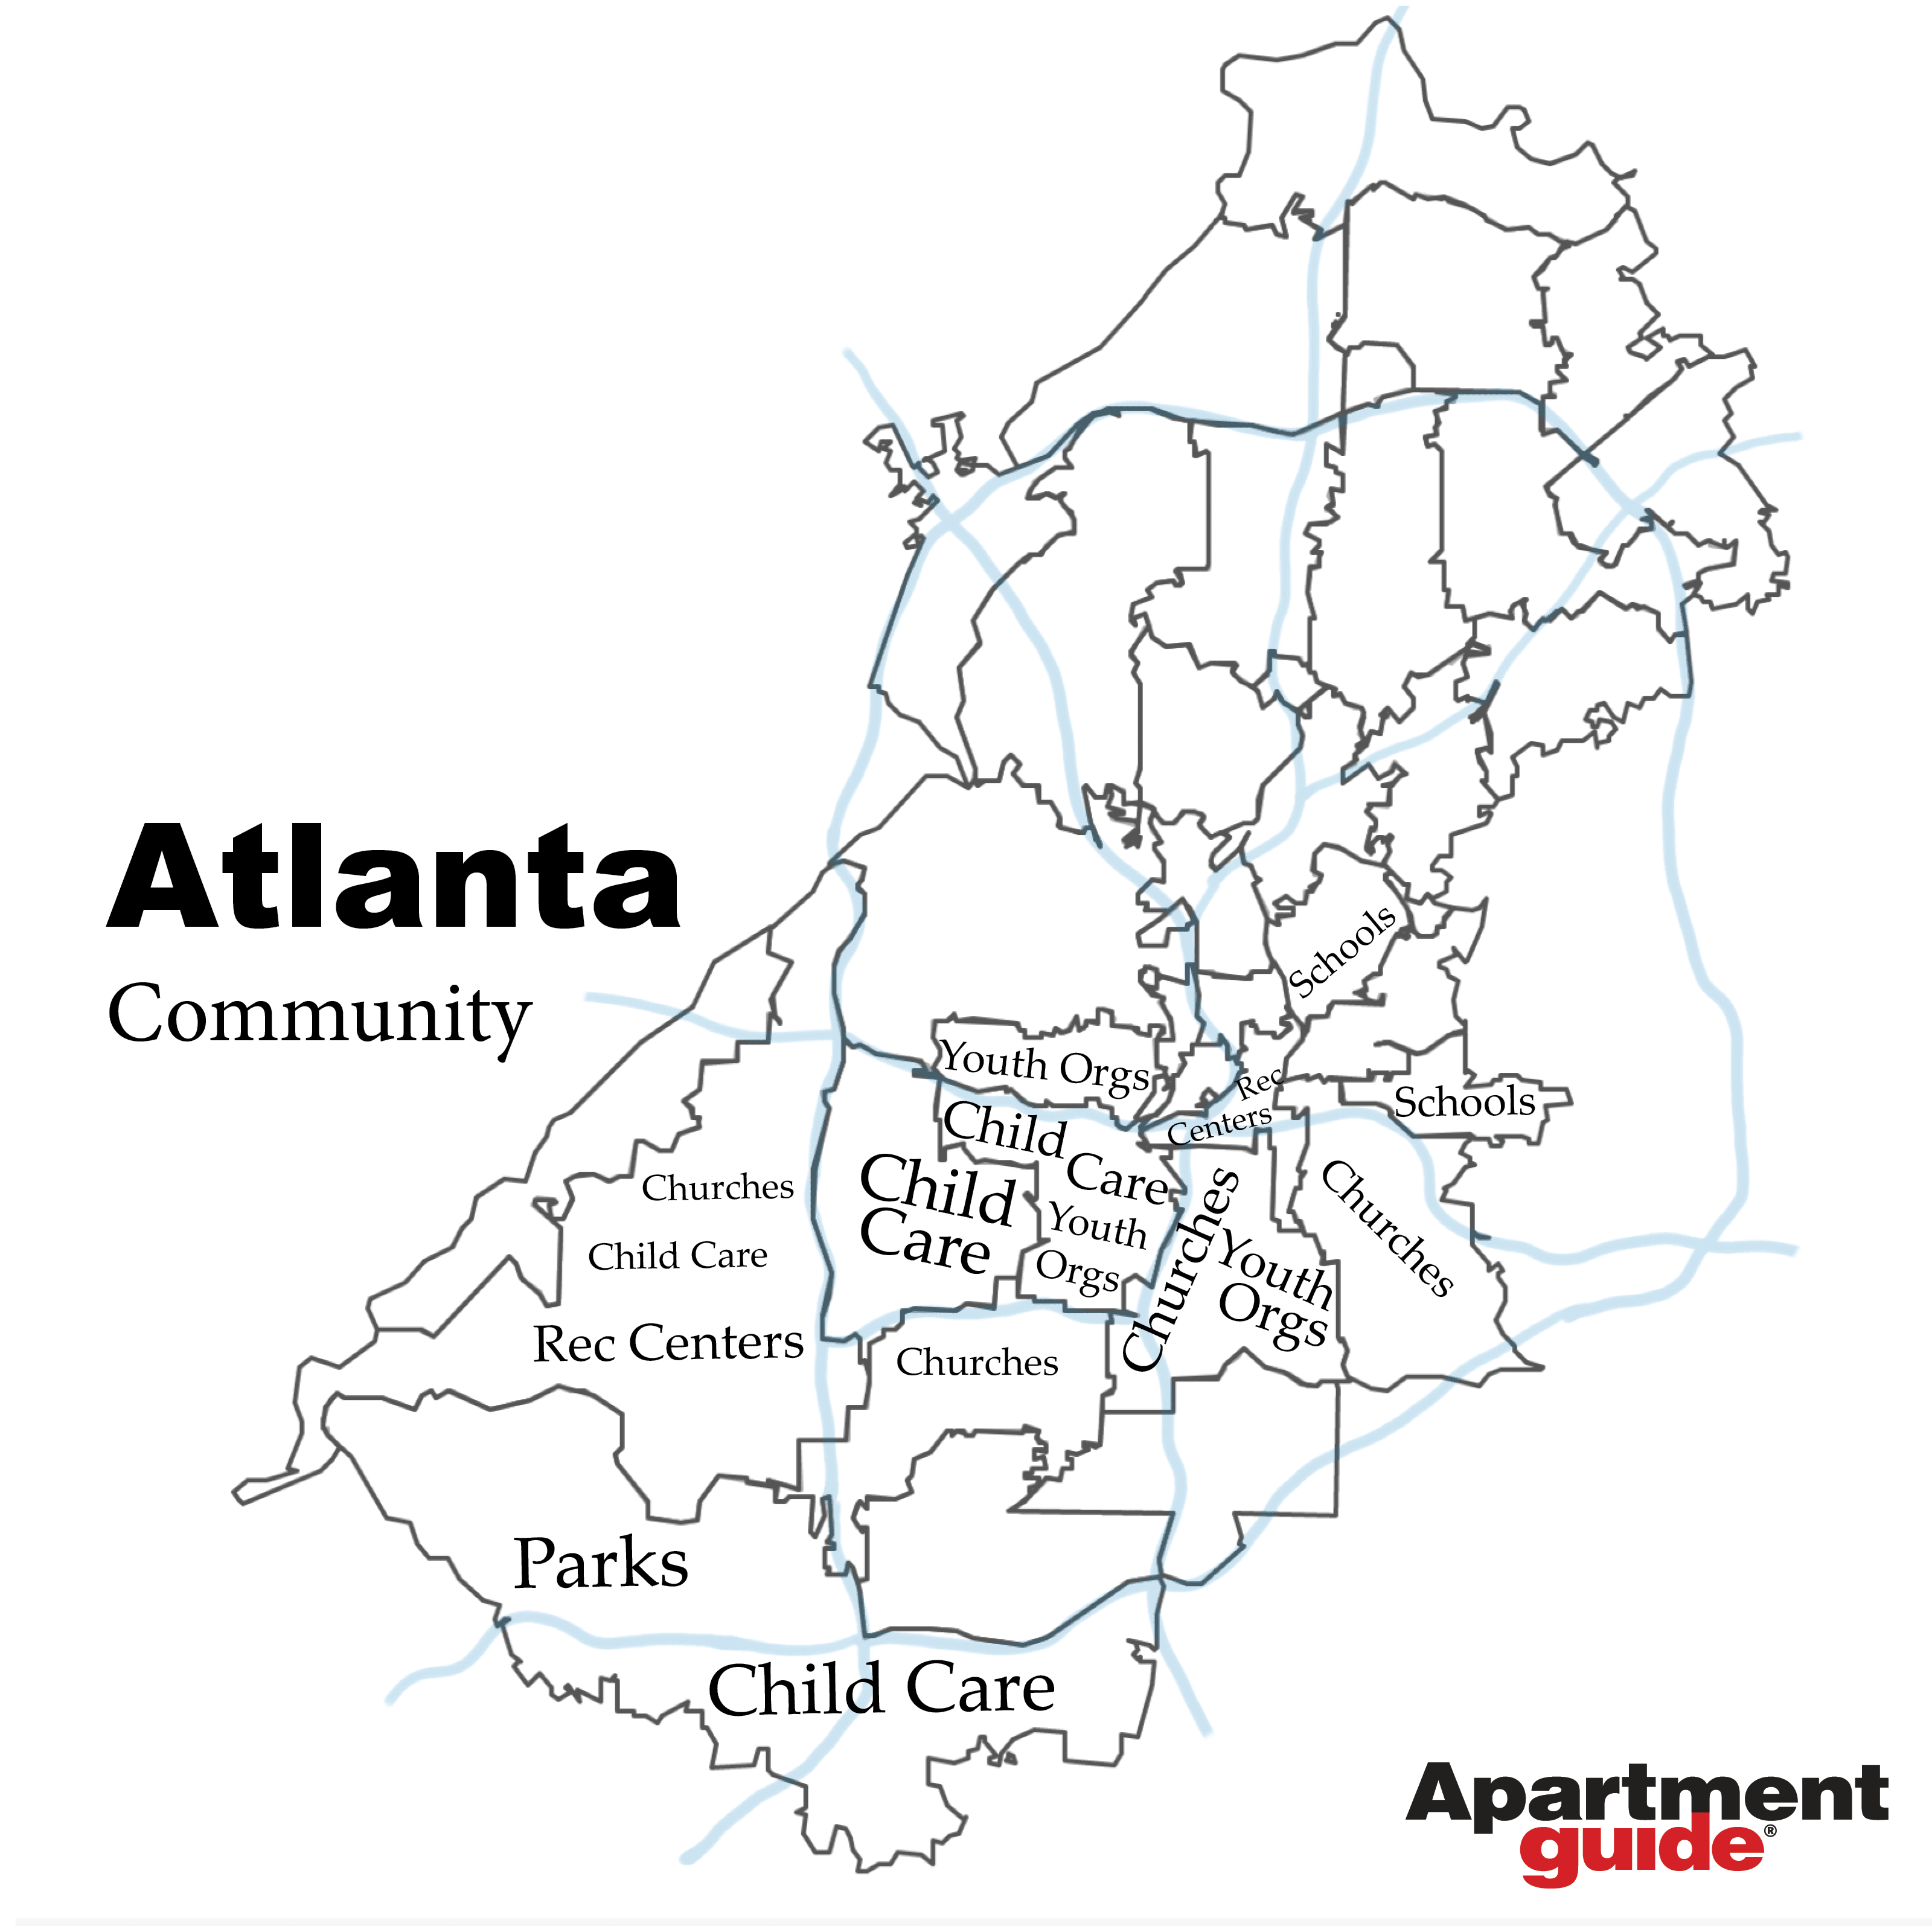 map showing most popular community or family-friendly businesses in atlanta